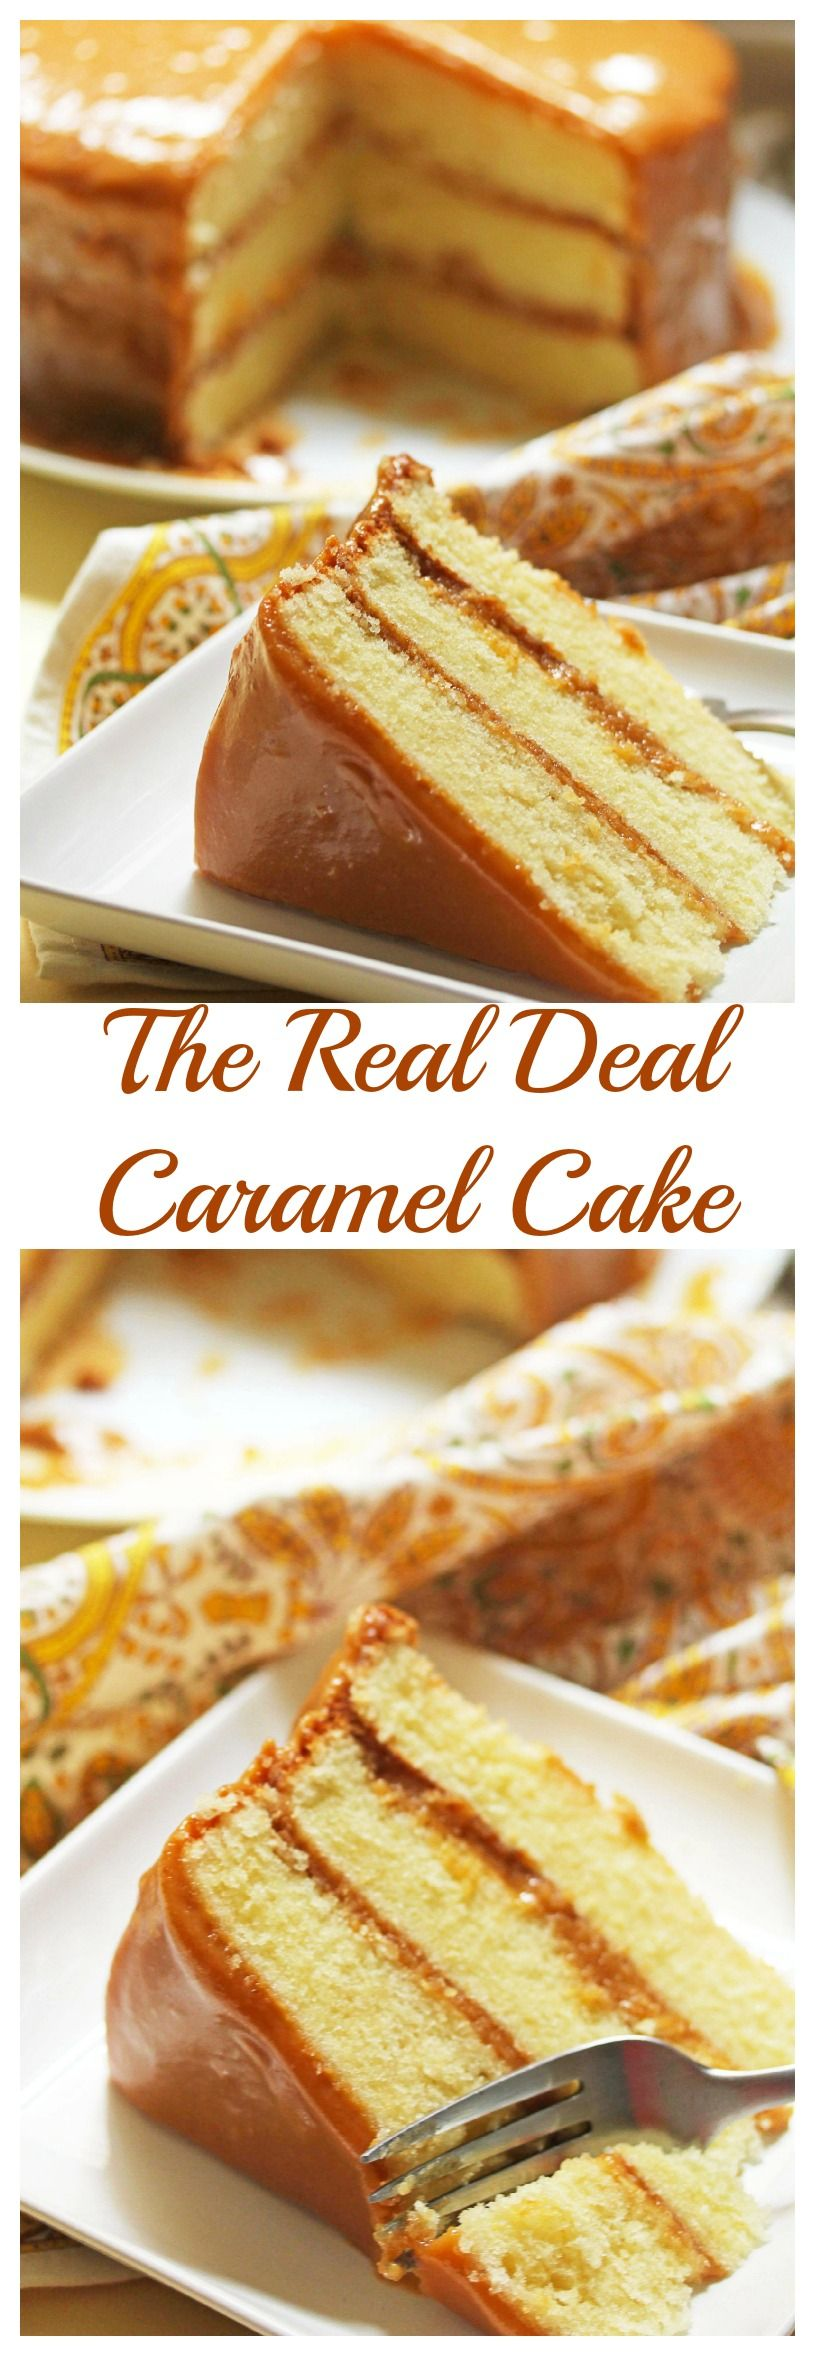 Real Deal Caramel Cake   Grandbaby Cakes is part of Caramel cake recipe -